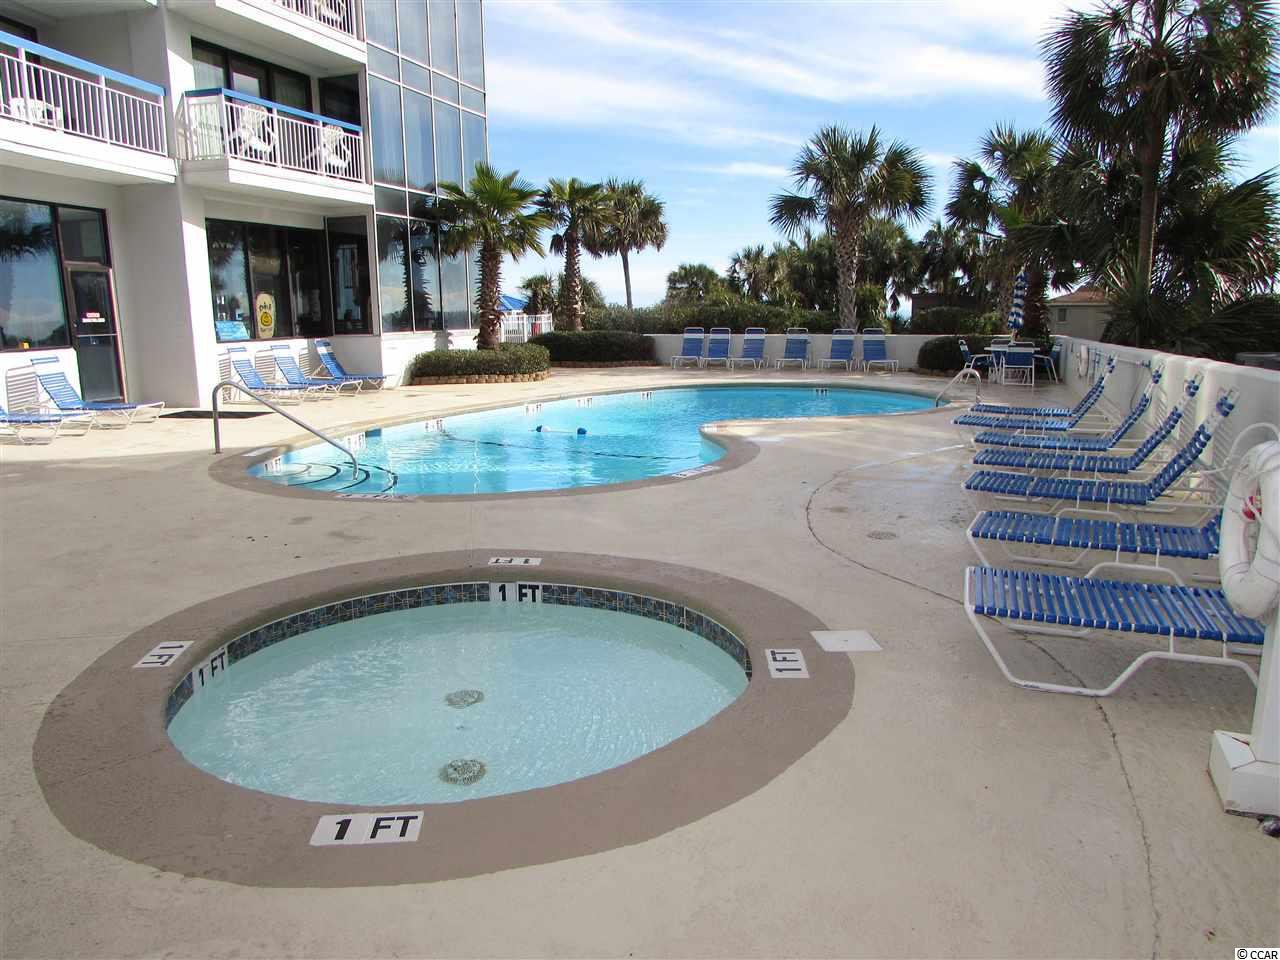 Cabana For Sale Myrtle Beach